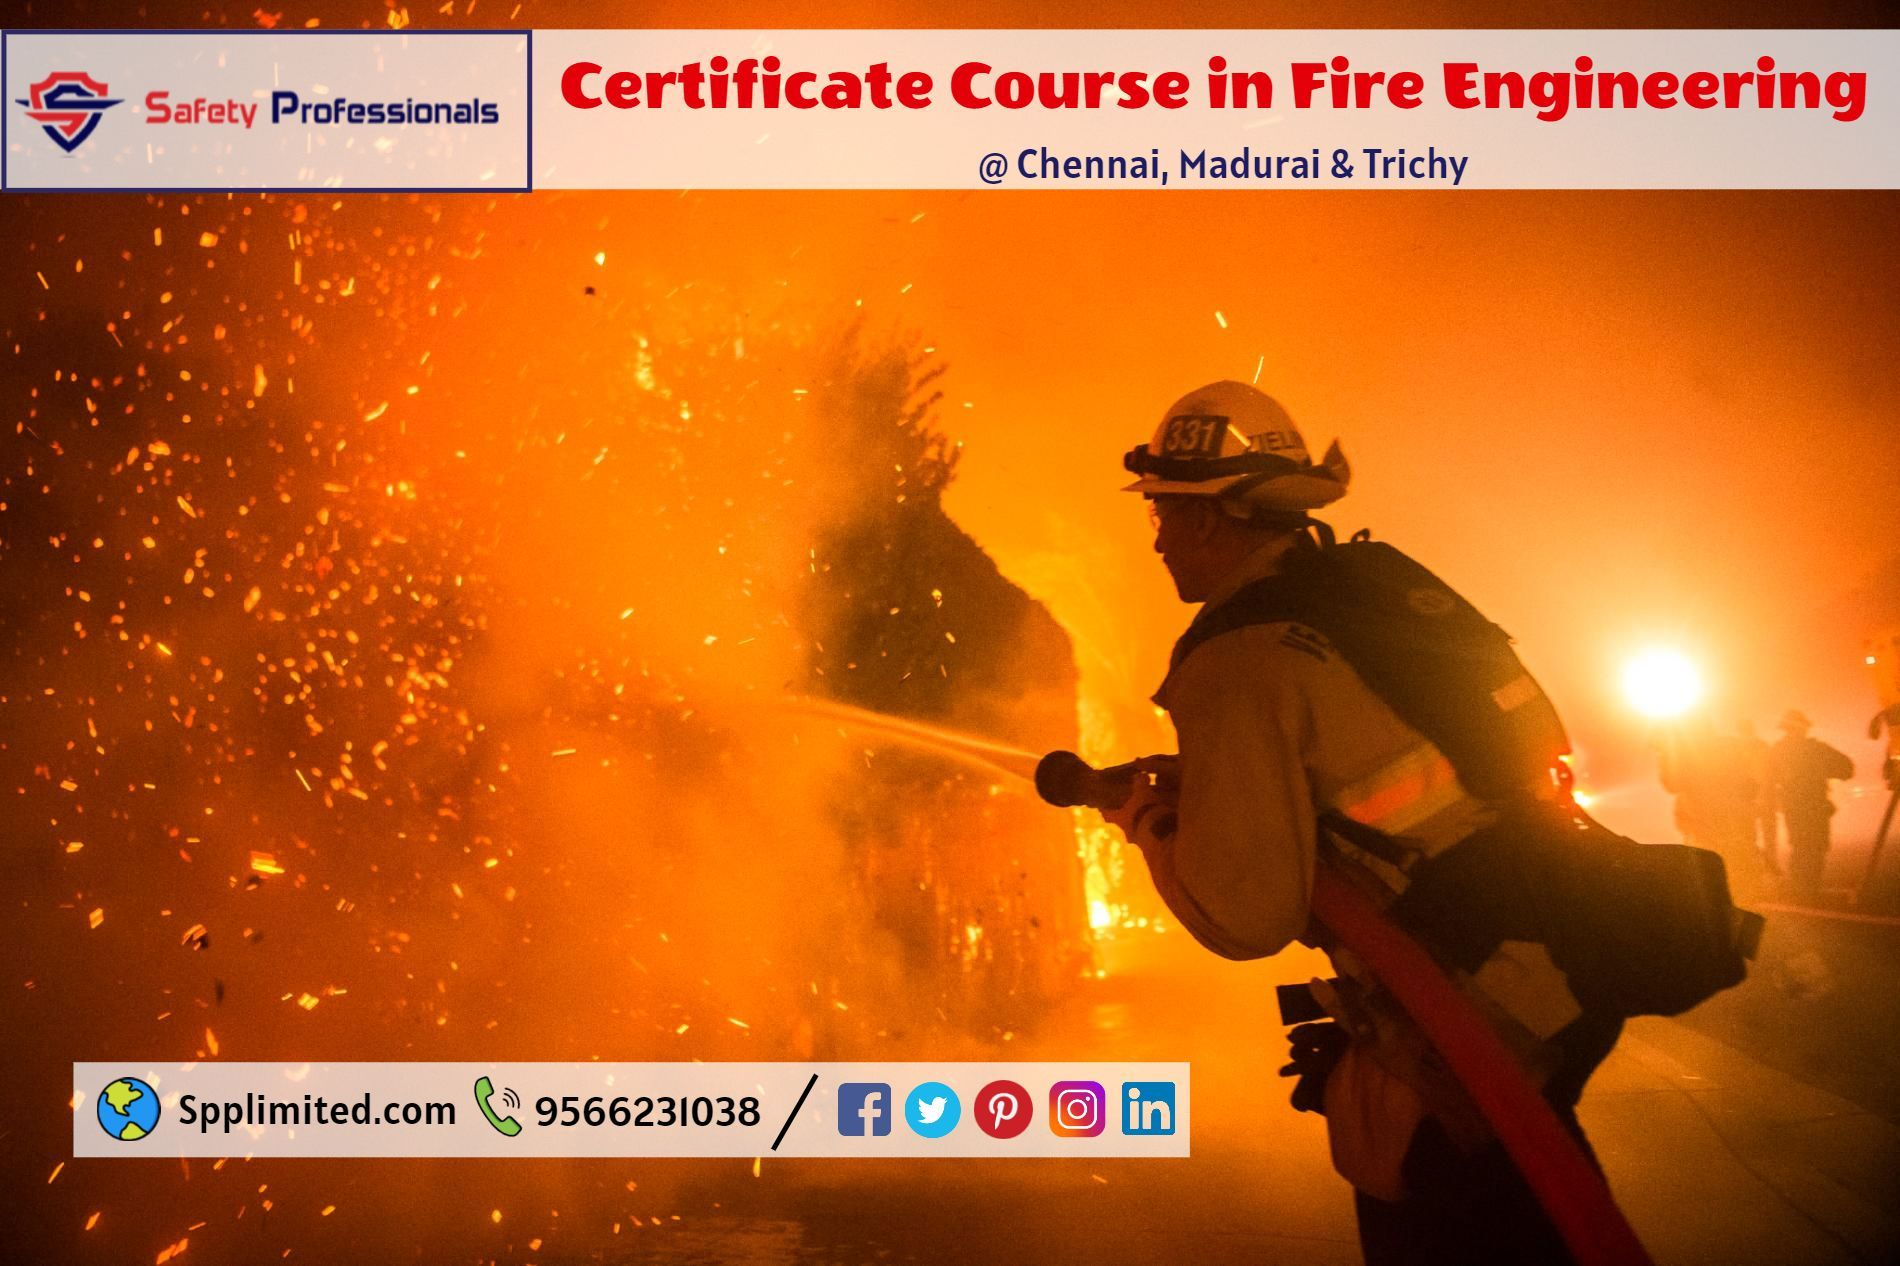 Pin on Safety Course in Chennai